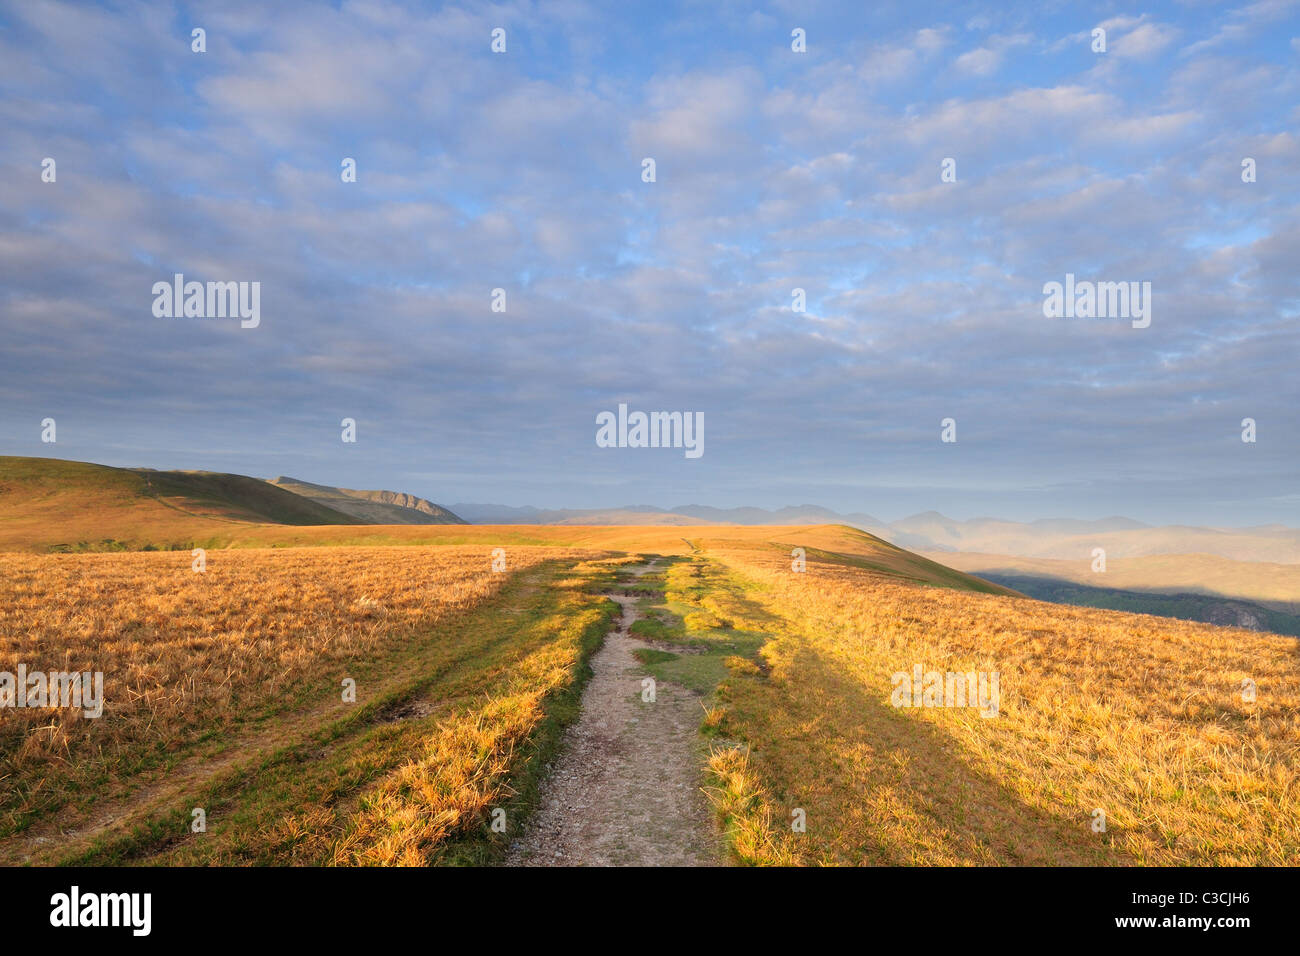 Morning sunlight on footpath on Watsons Dodd in the English Lake District - Stock Image